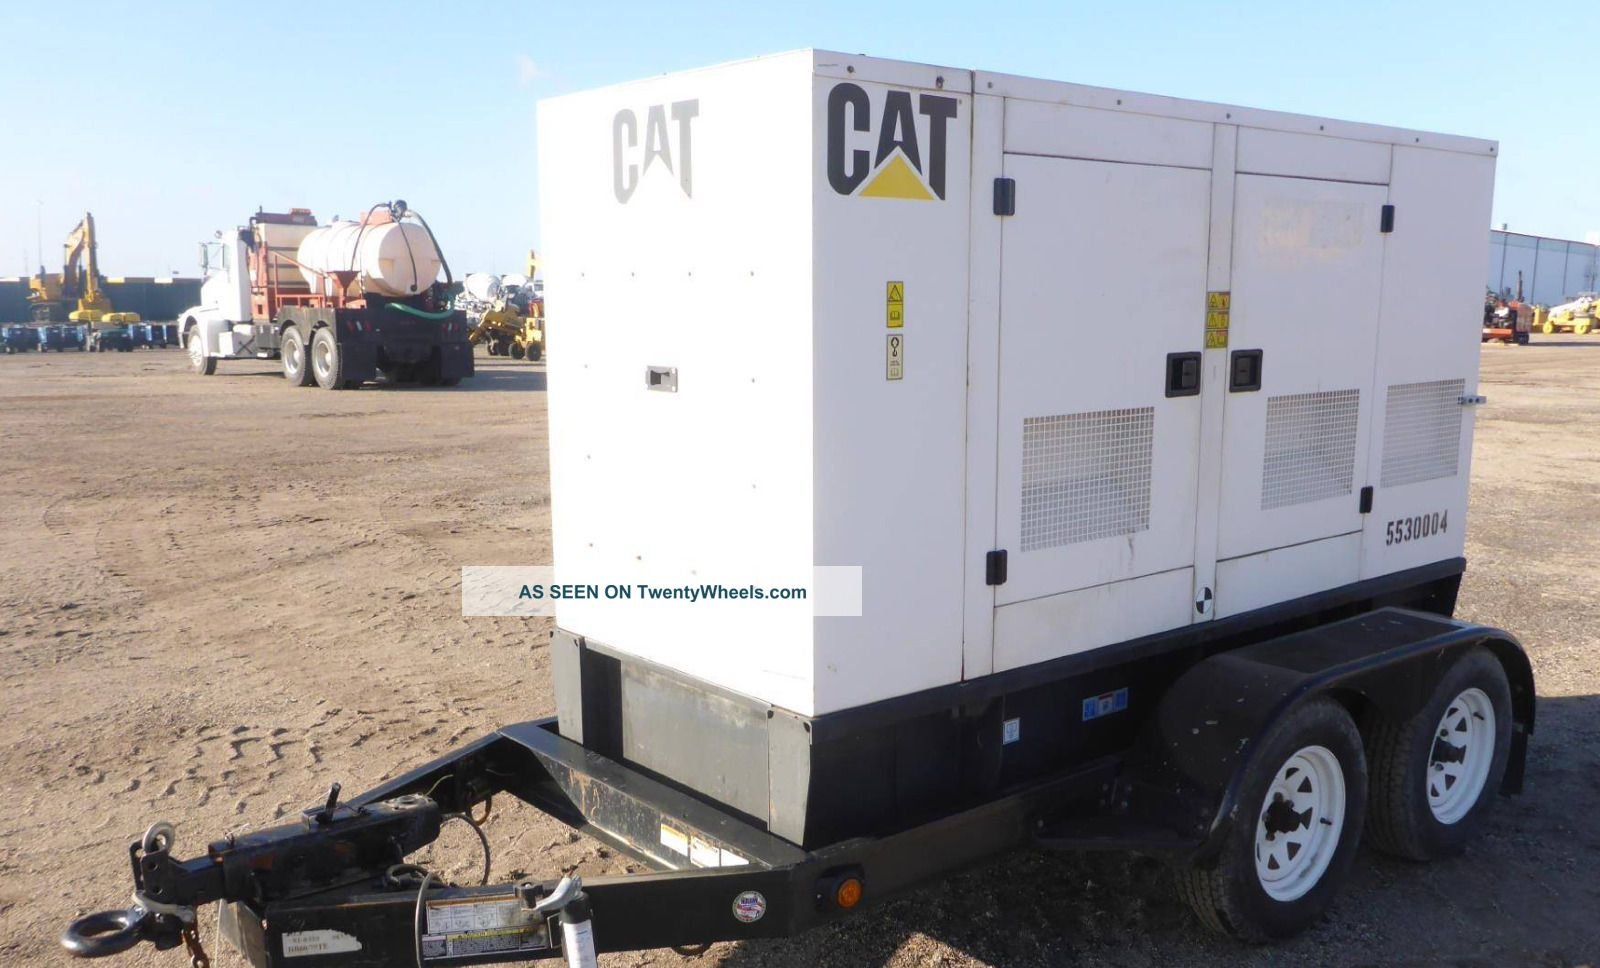 2006 Caterpillar Xq30 27kw Diesel Portable Generator 3 Phase Other photo